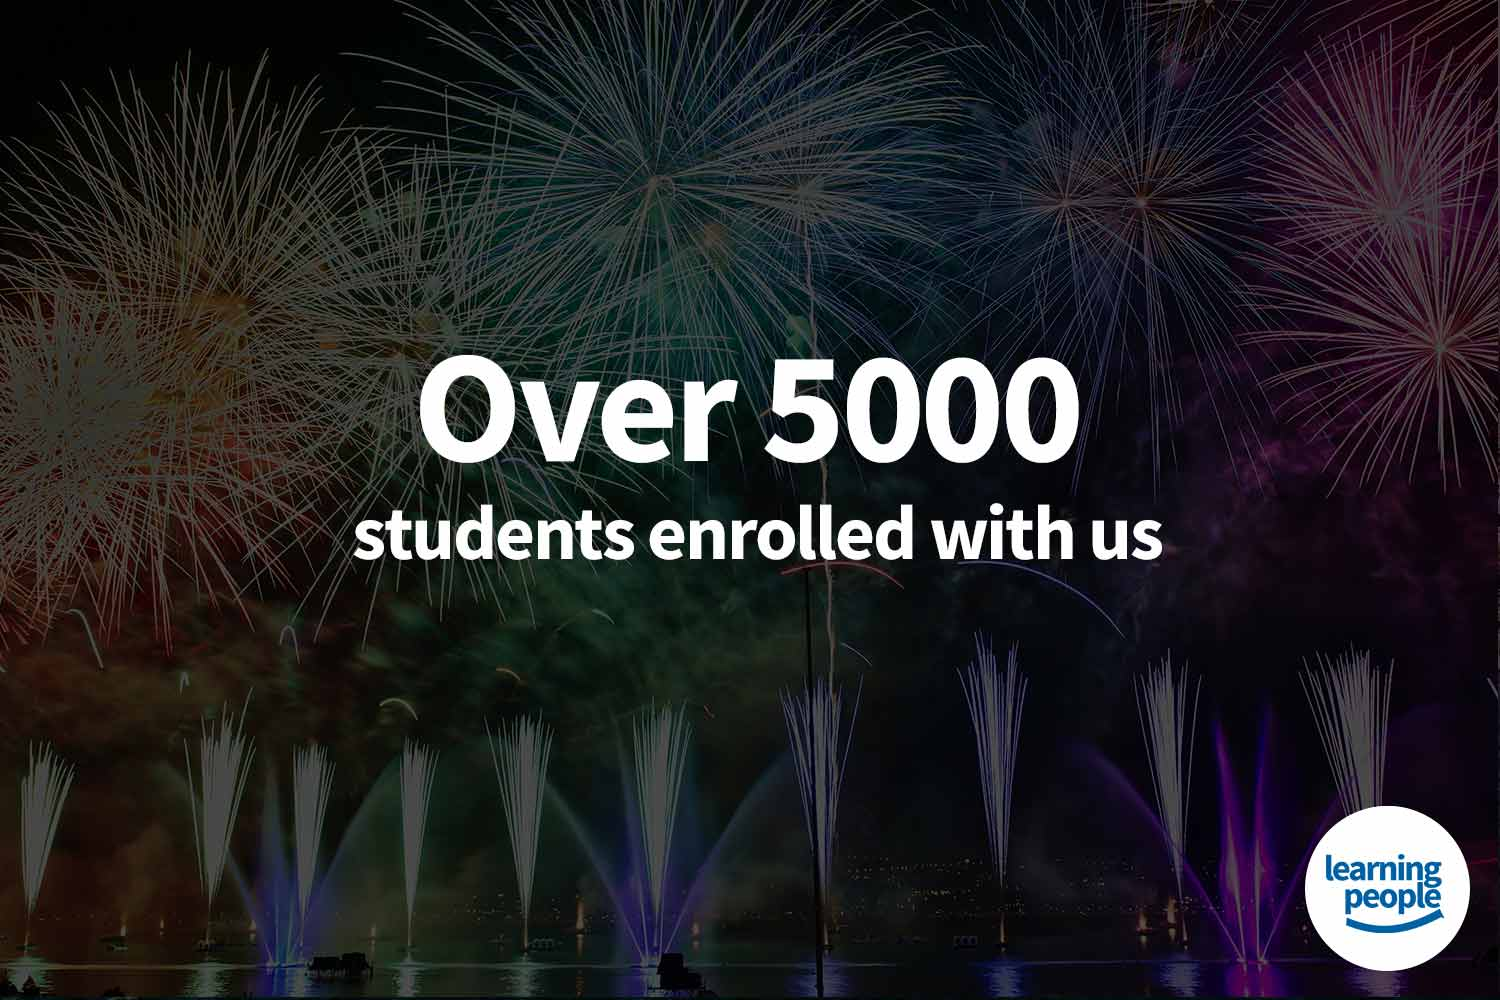 over-5000-students-enrolled-with-us.jpg